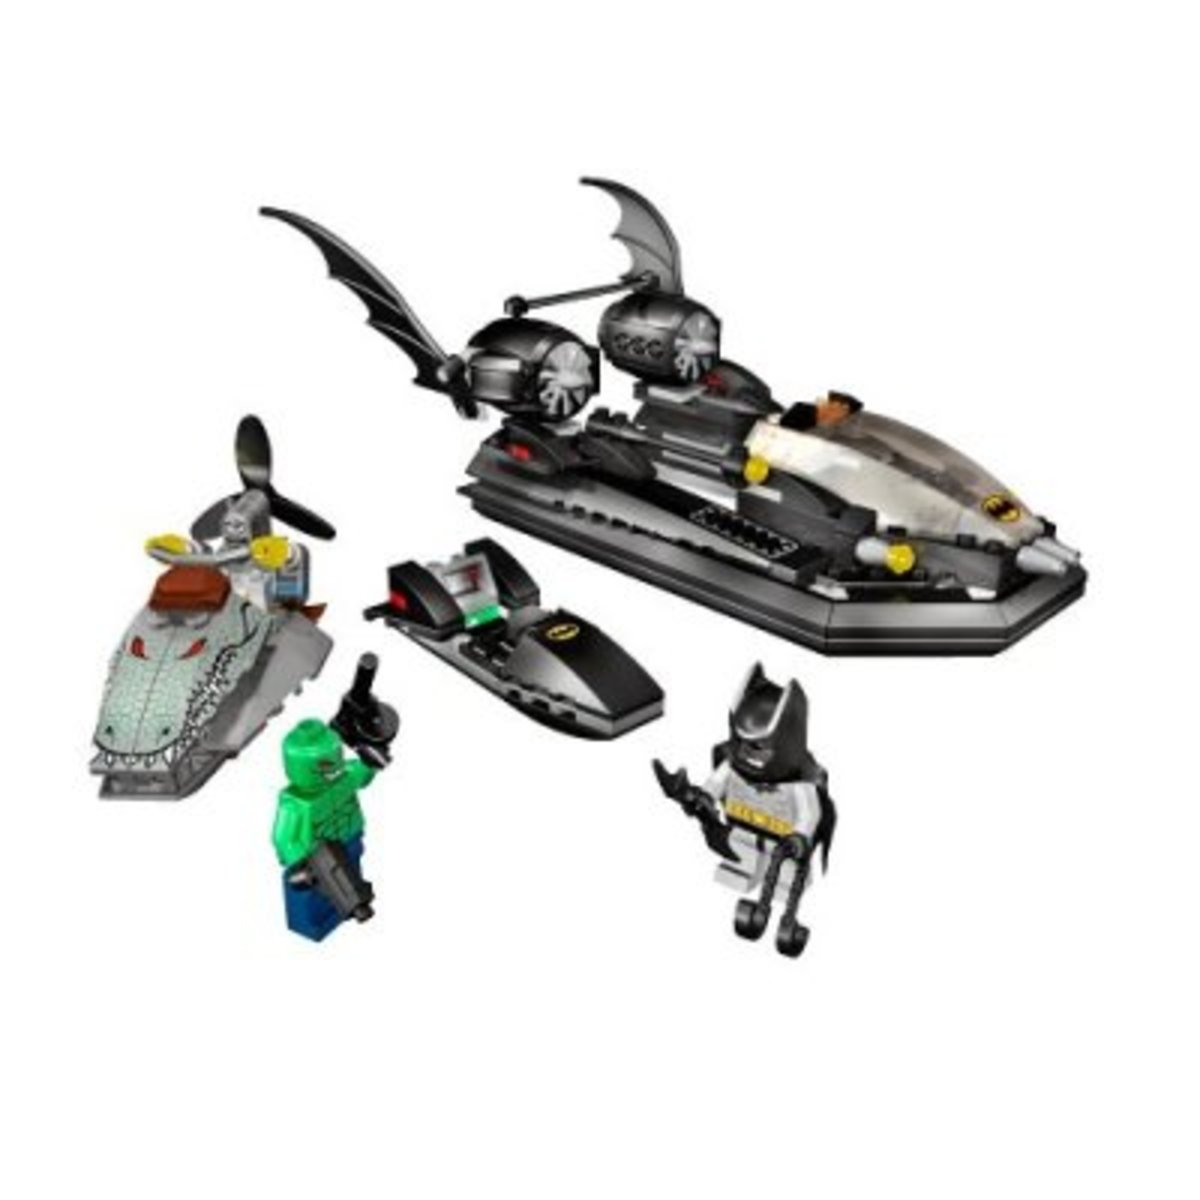 LEGO Batman The Batboat Hunt For Killer Croc 7780 Assembled